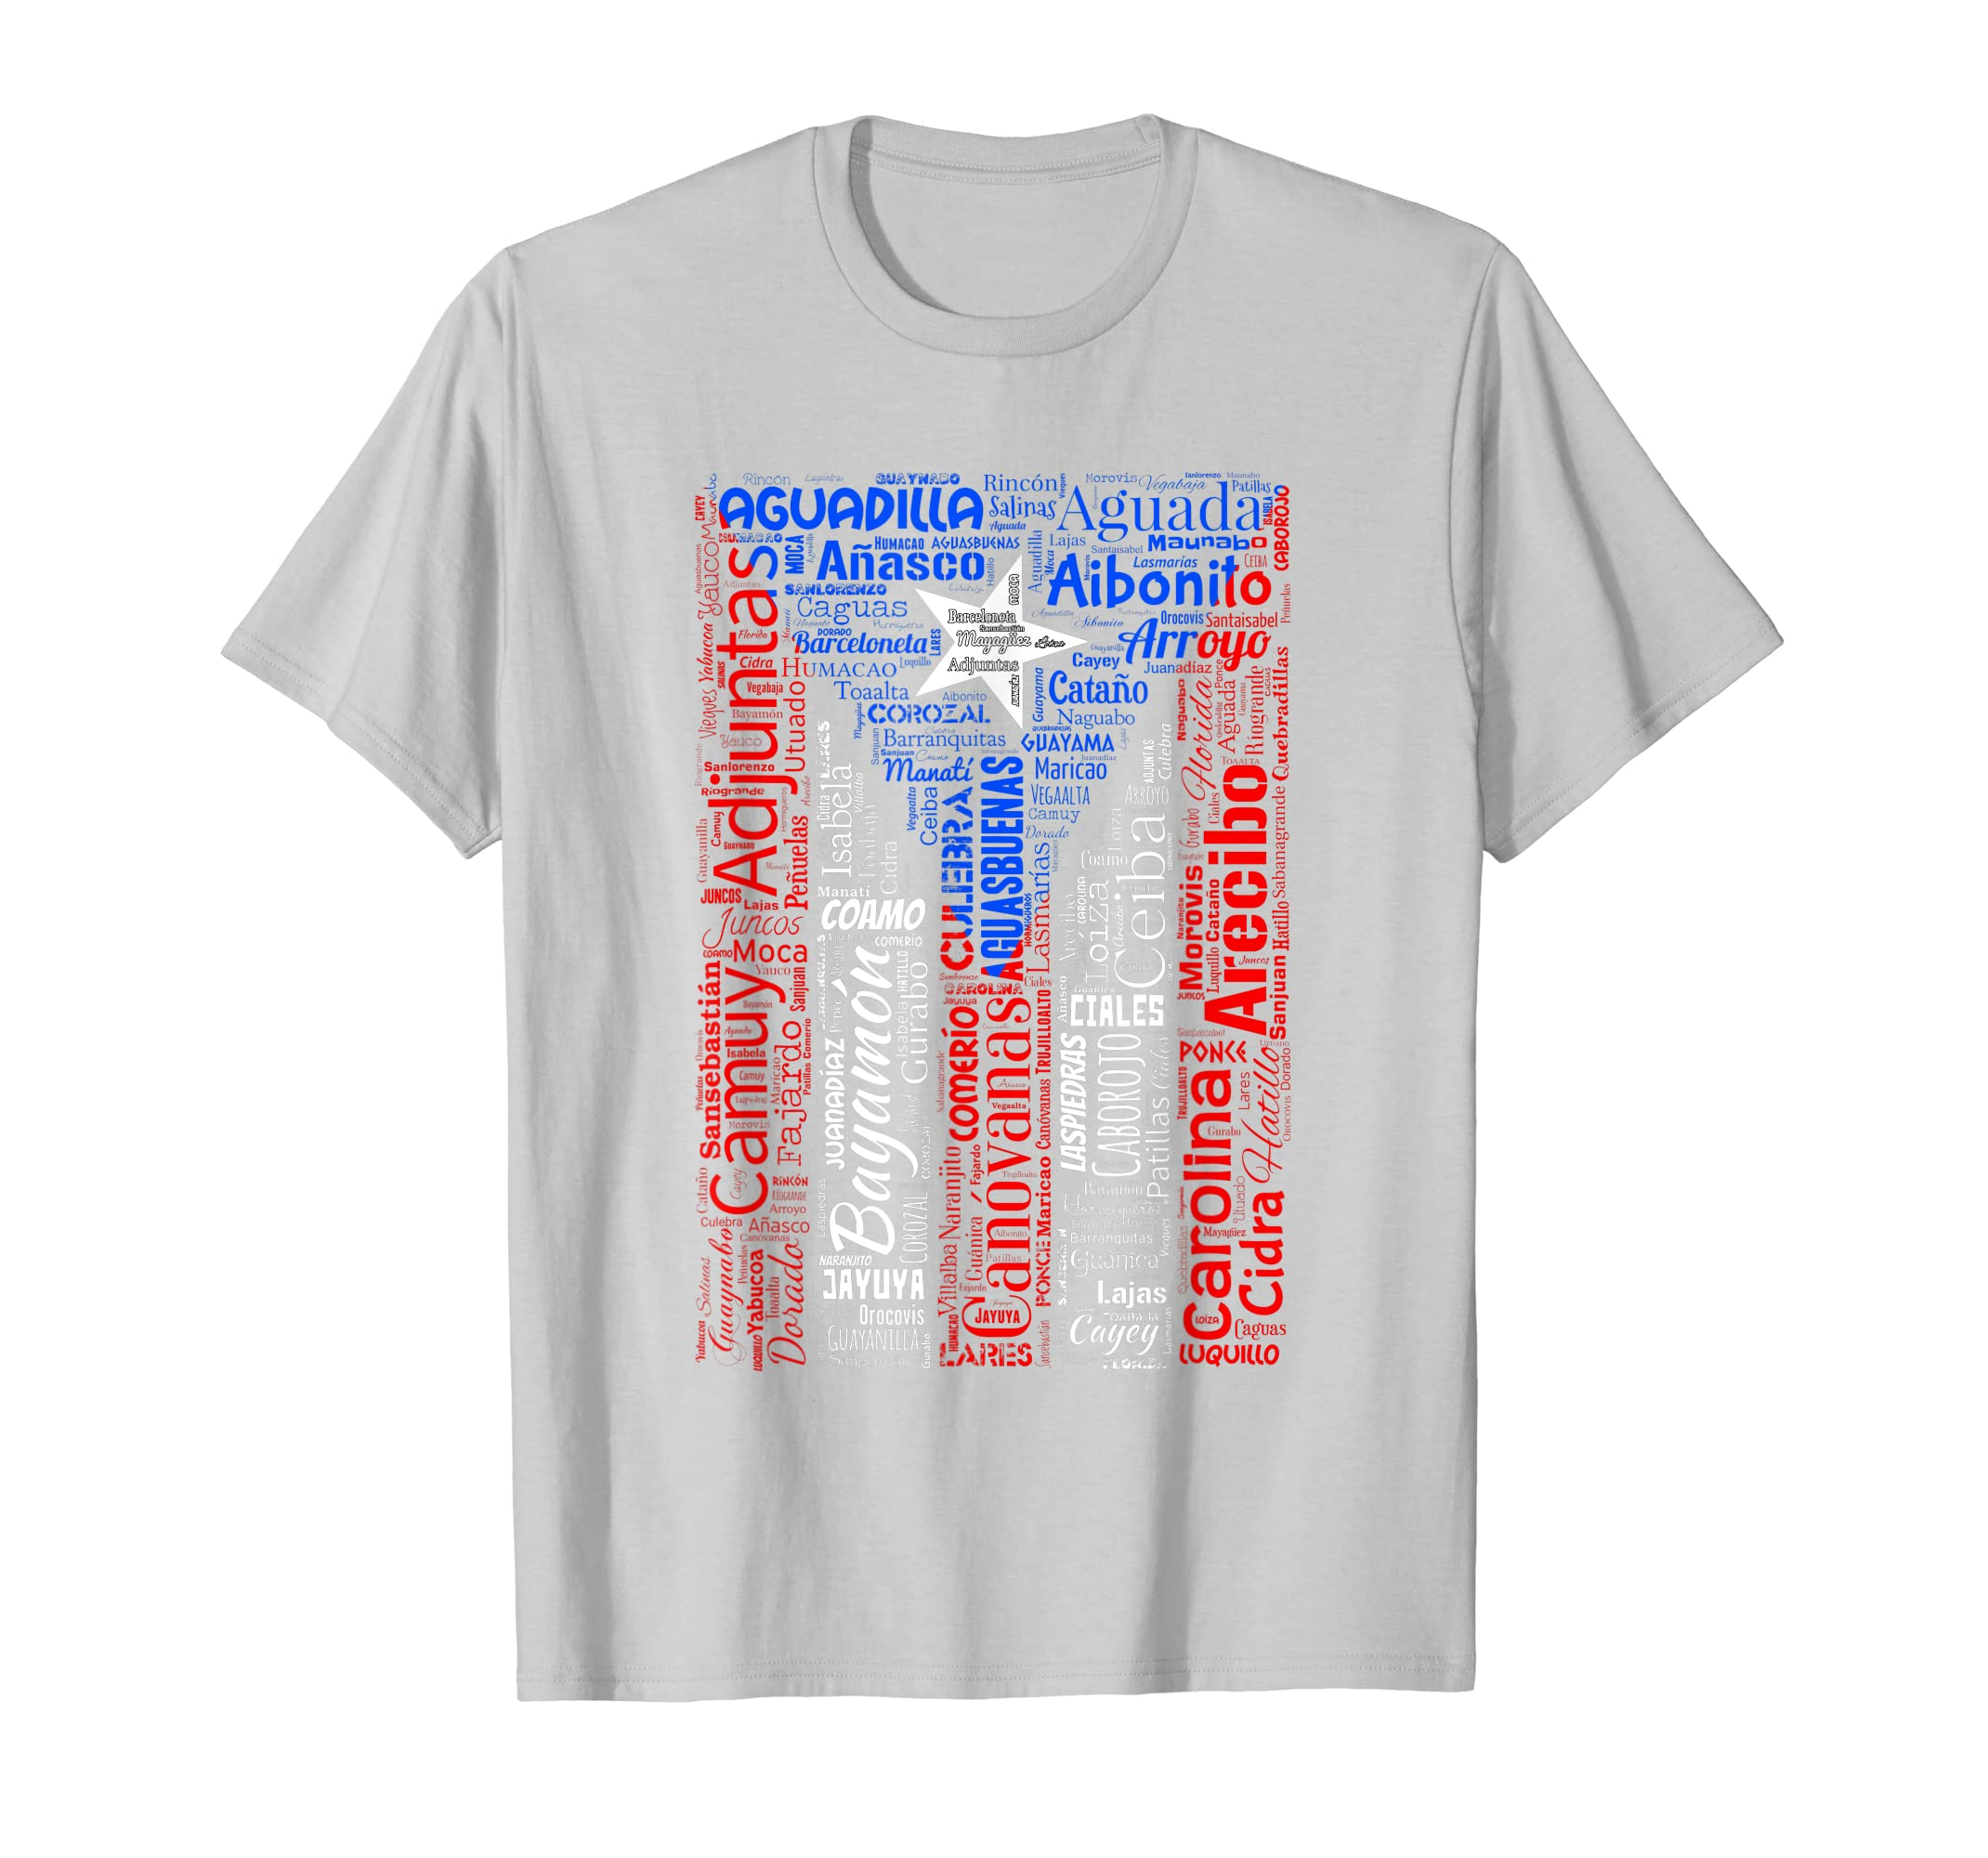 Amazon.com: Puerto Rican Flag Shirt with Towns and Cities of Puerto Rico: Clothing